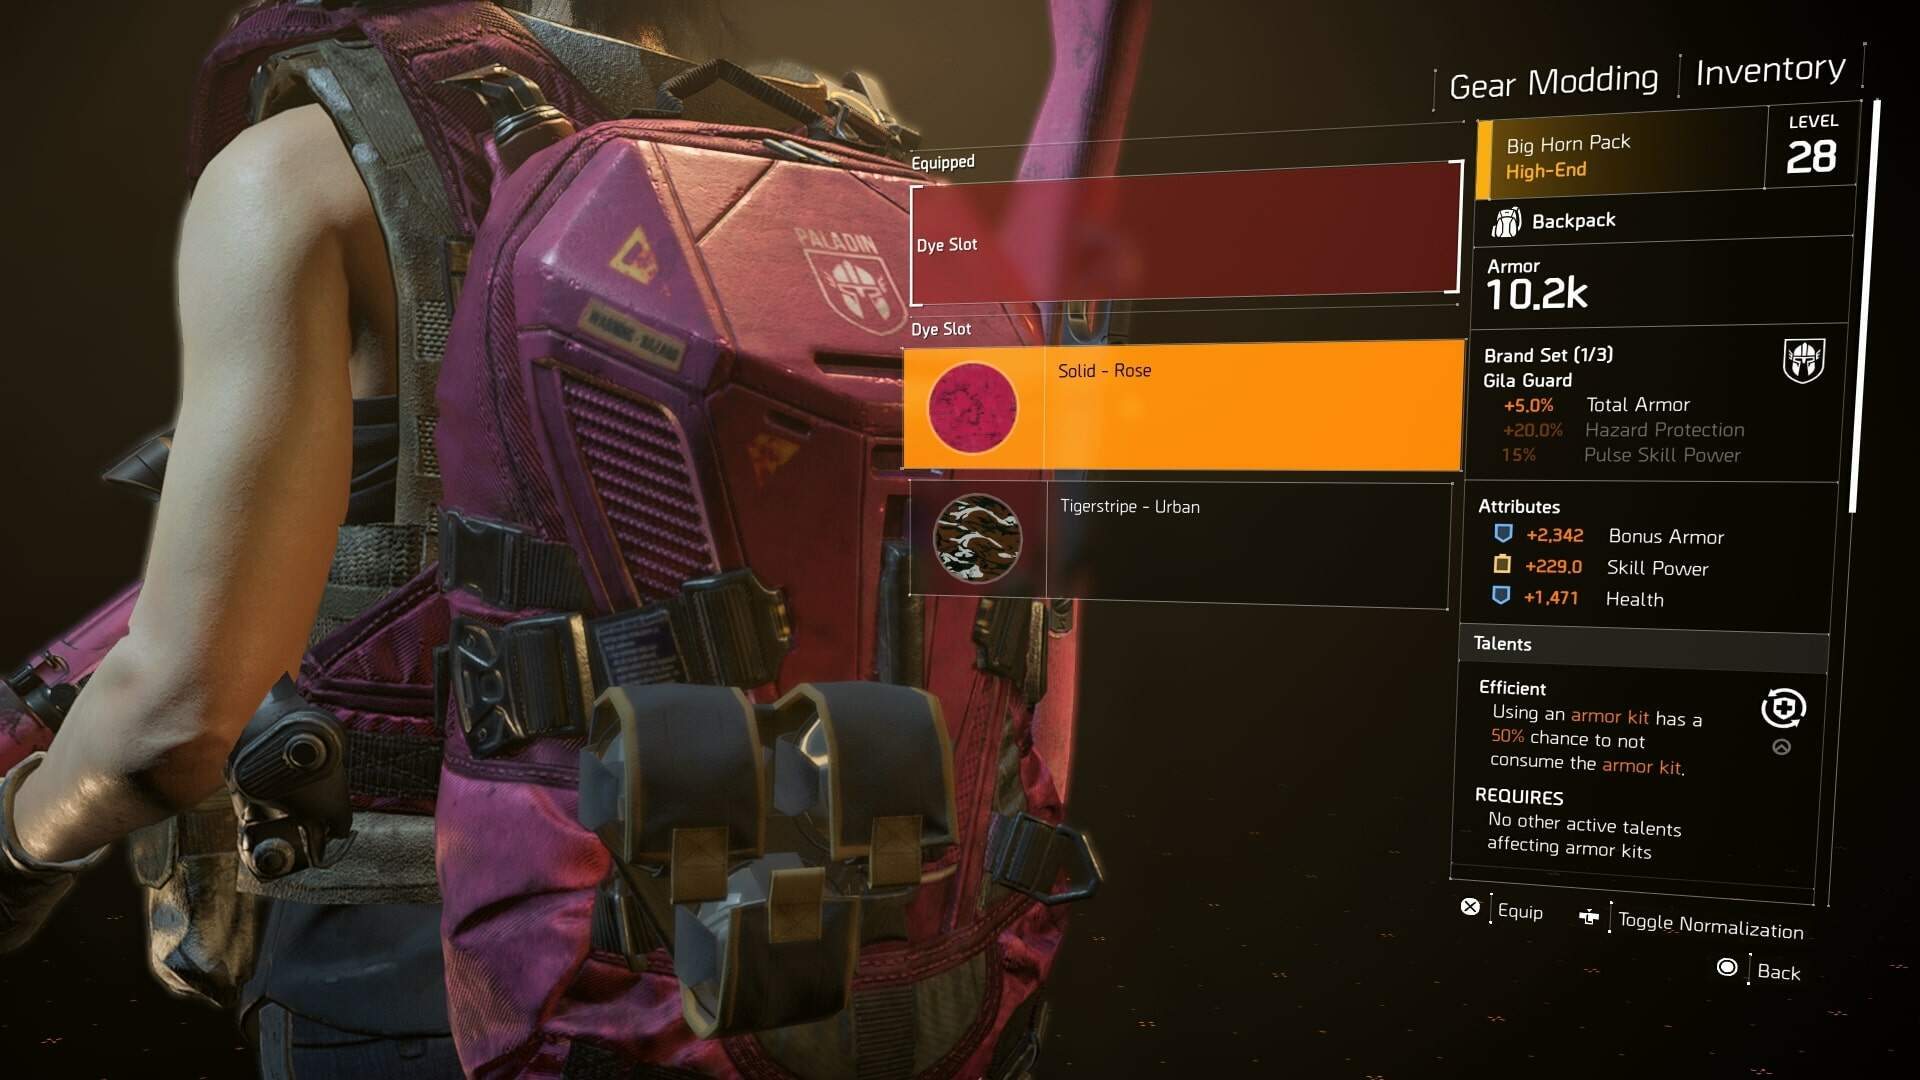 The Division 2 Dyes - How to Unlock New Dyes, Gear Dyes, Division 2 Dye Crate Locations